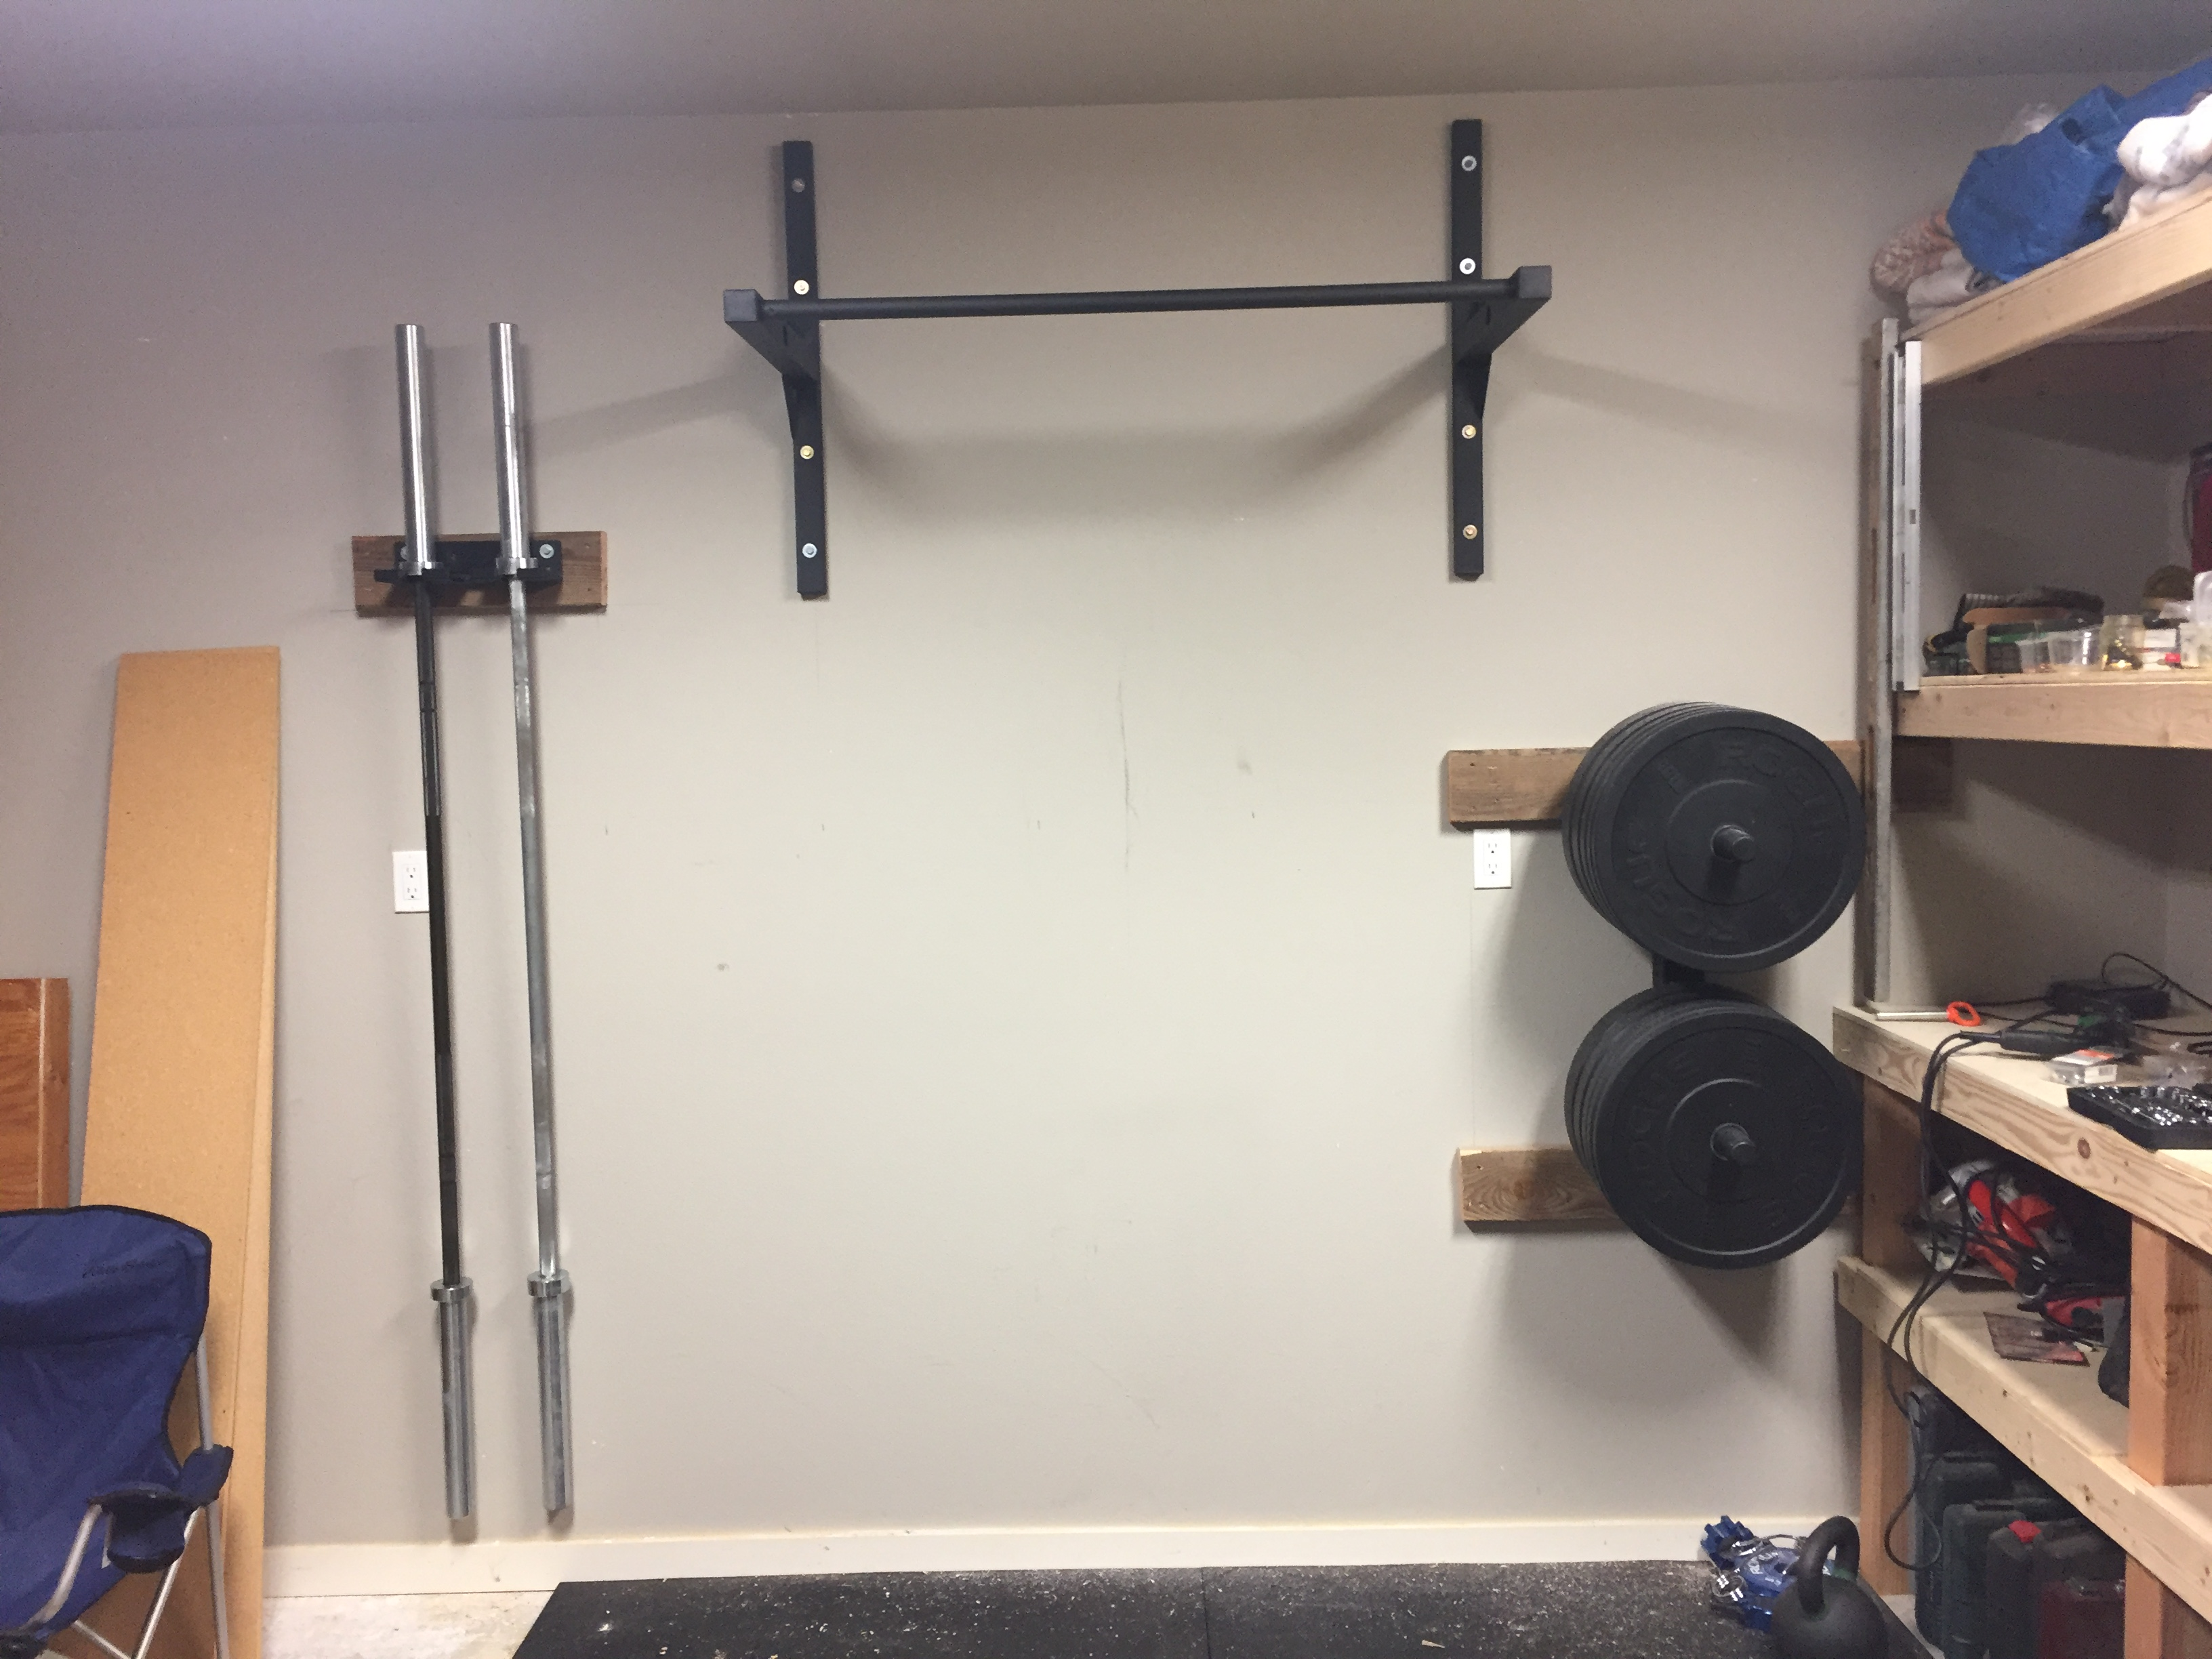 Diy pull up bar wall mounted do it your self